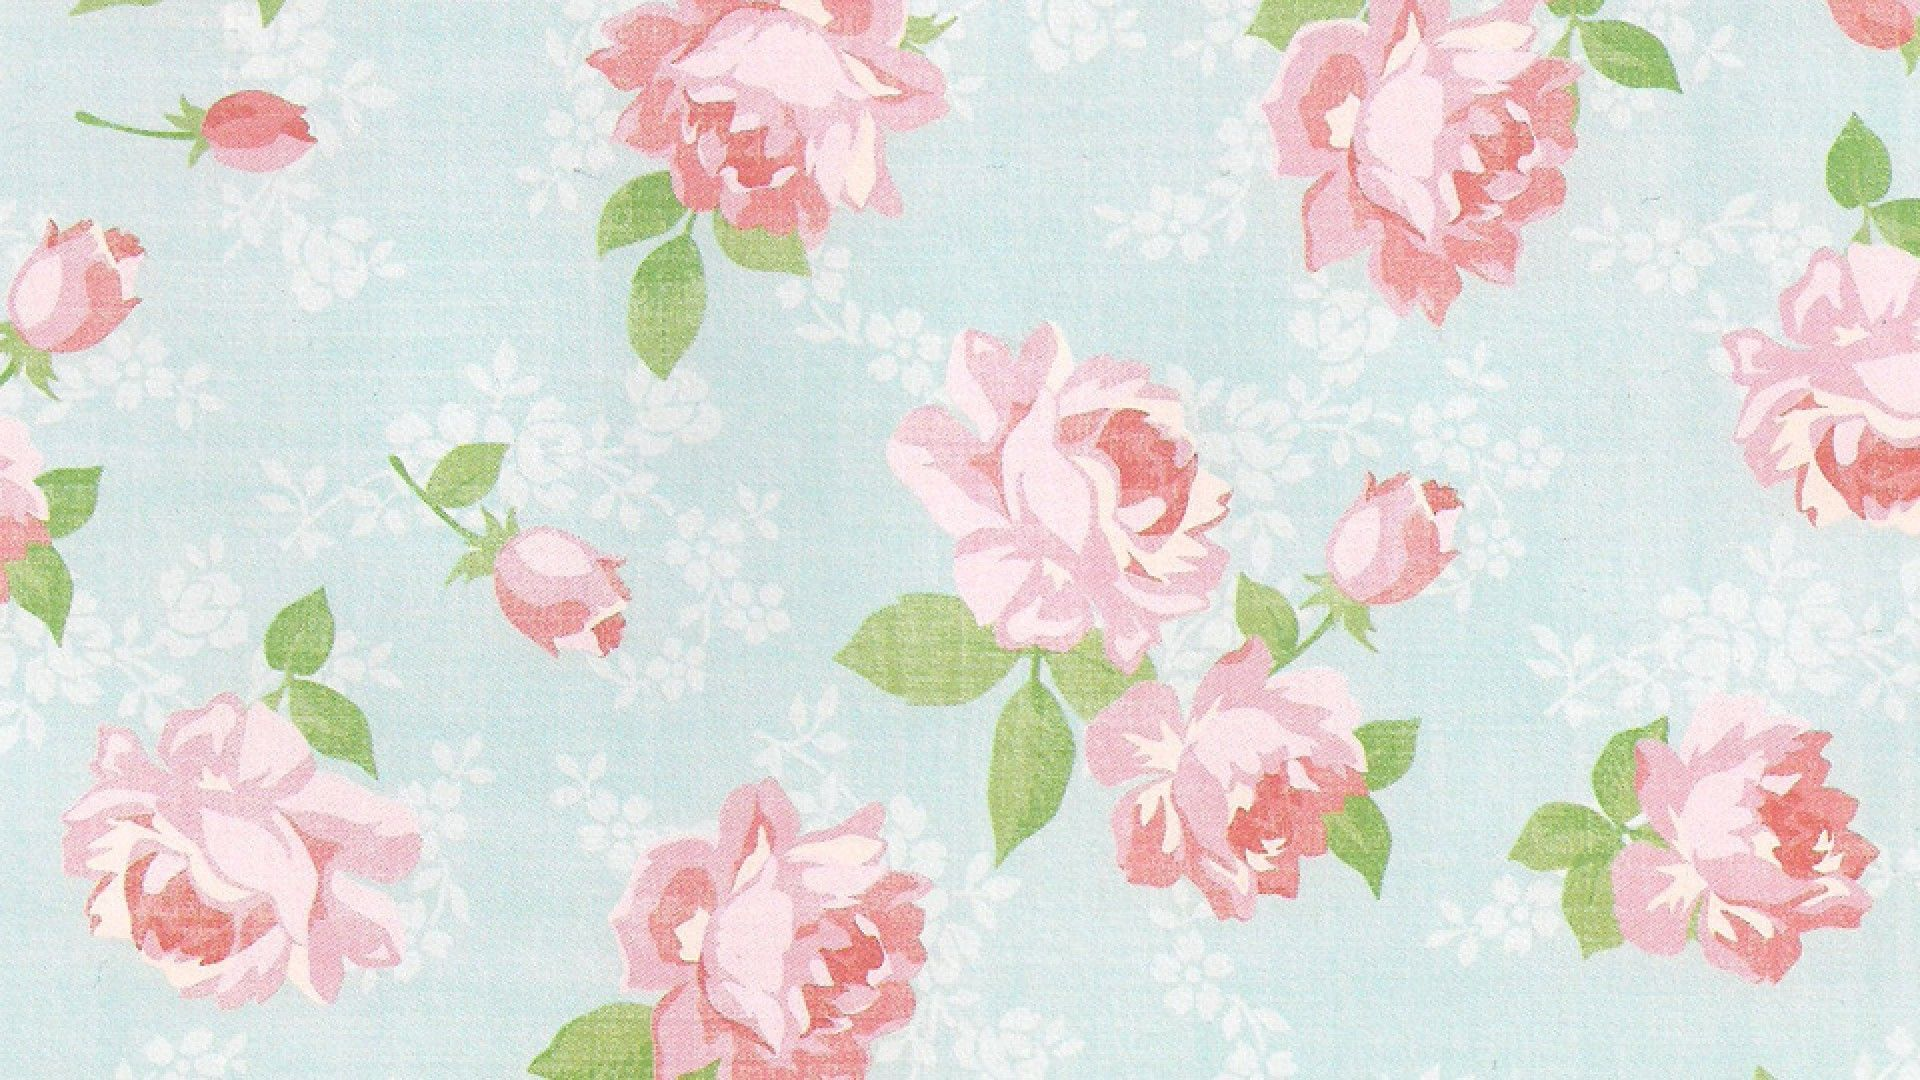 Floral Tumblr Desktop Wallpapers Top Free Floral Tumblr